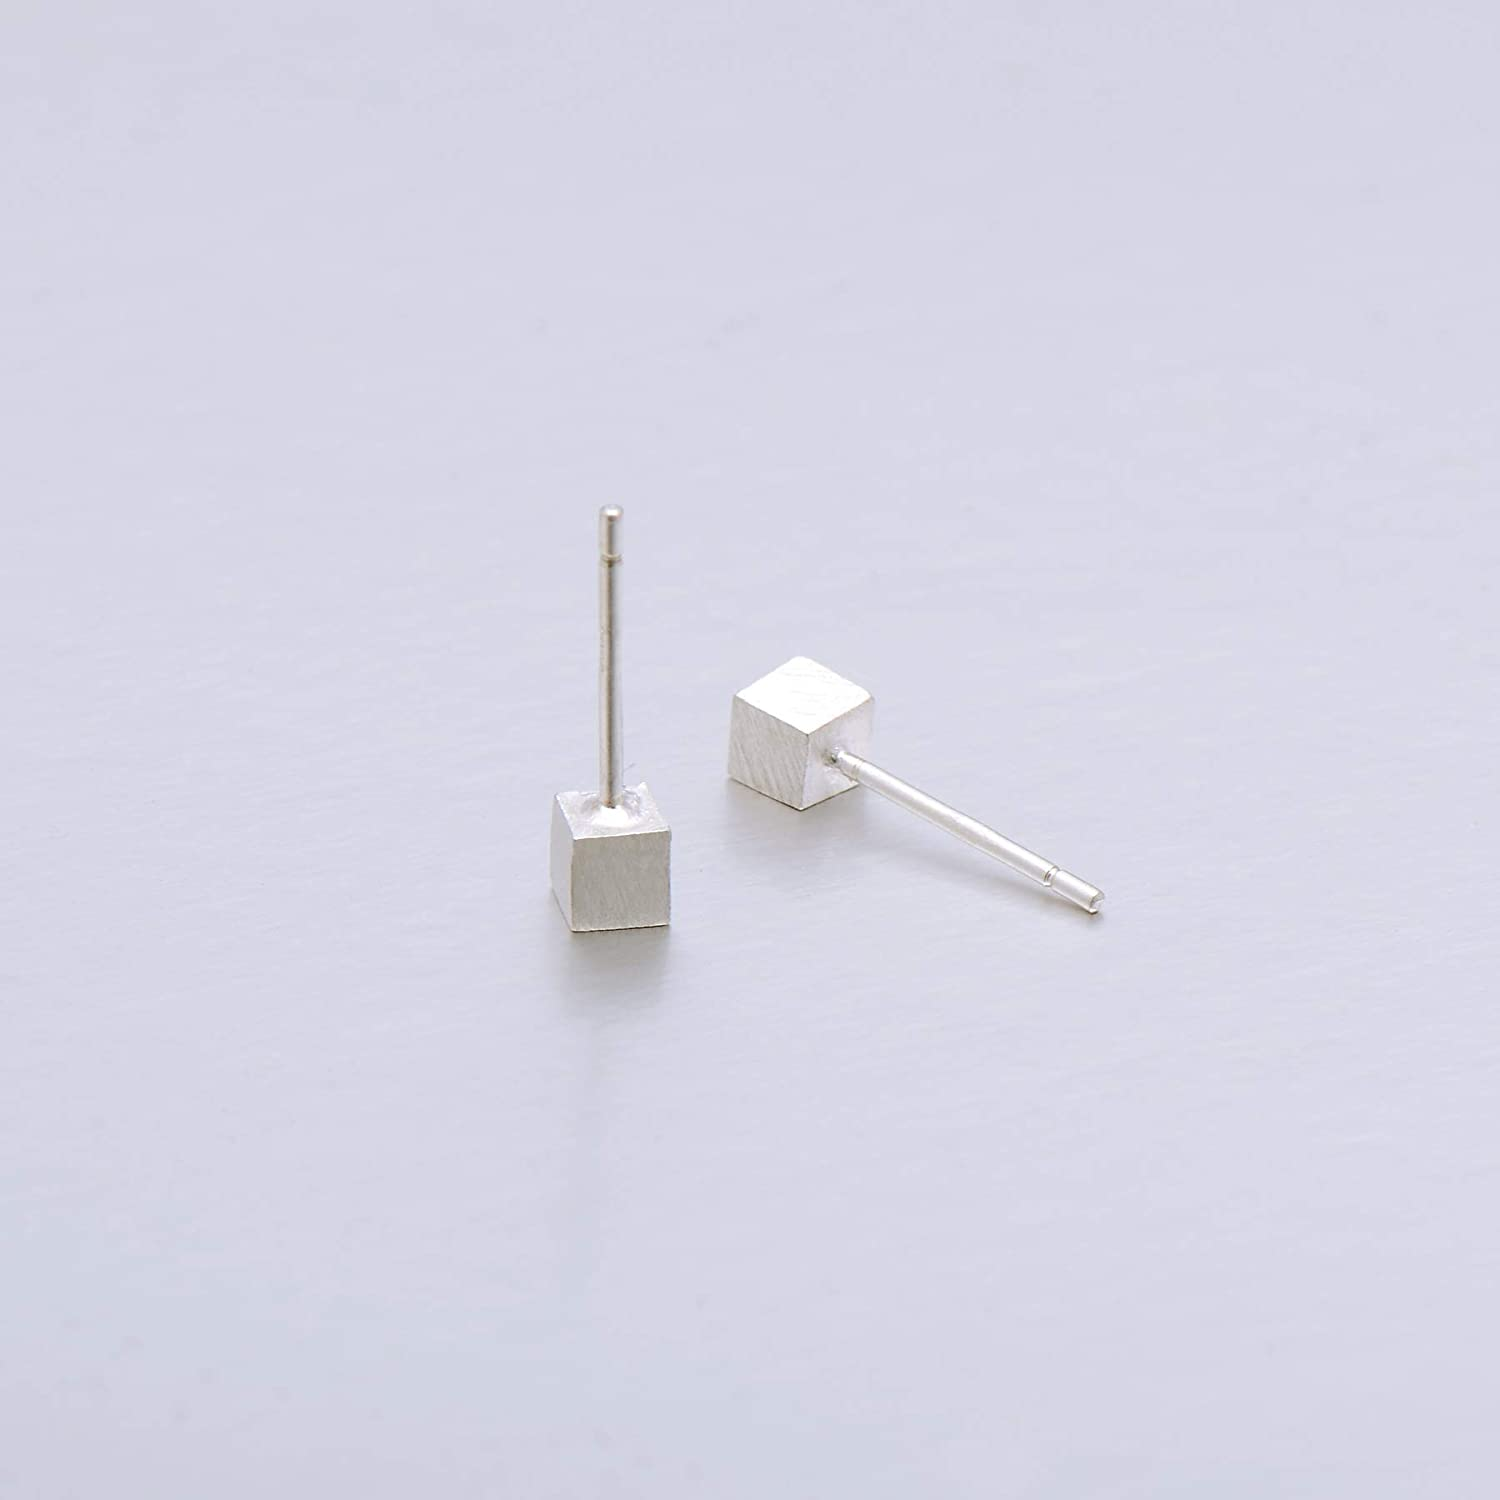 925 Sterling Silver Imperfect Tiny Cube Studs Earrings